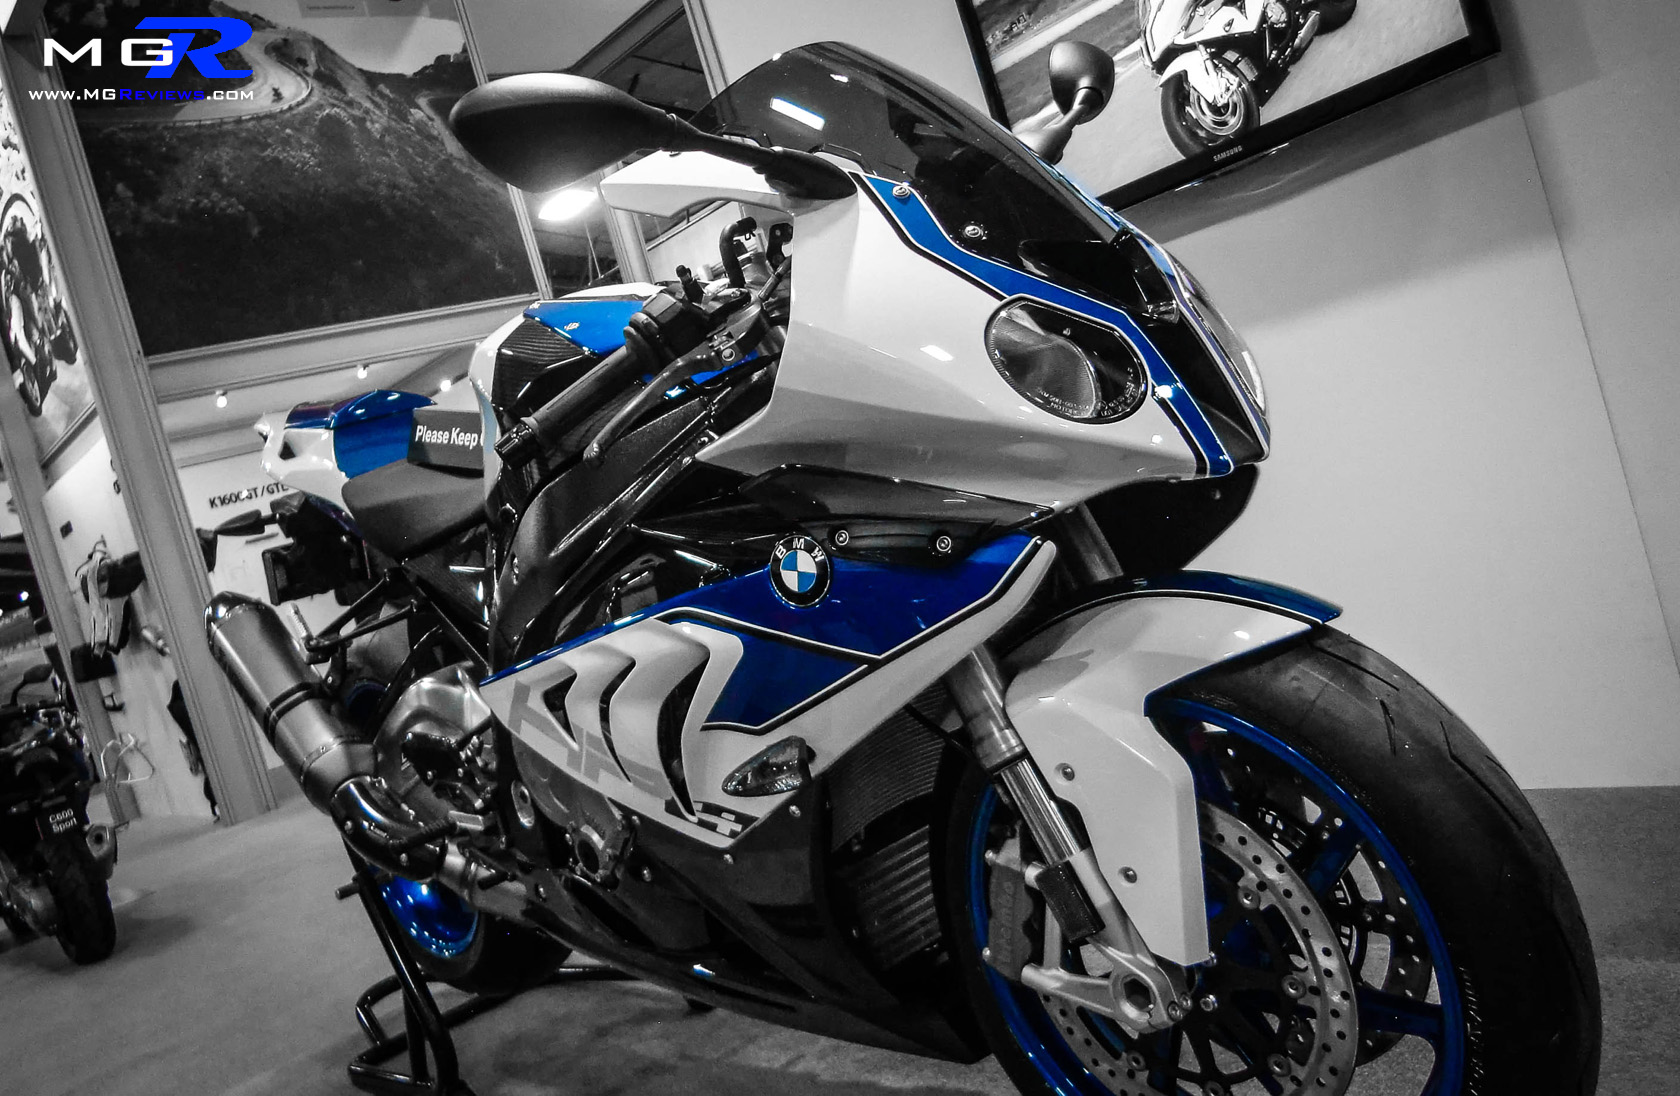 Bmw S1000Rr Hp4 Wallpaper Best Cool HD Download 1680x1096